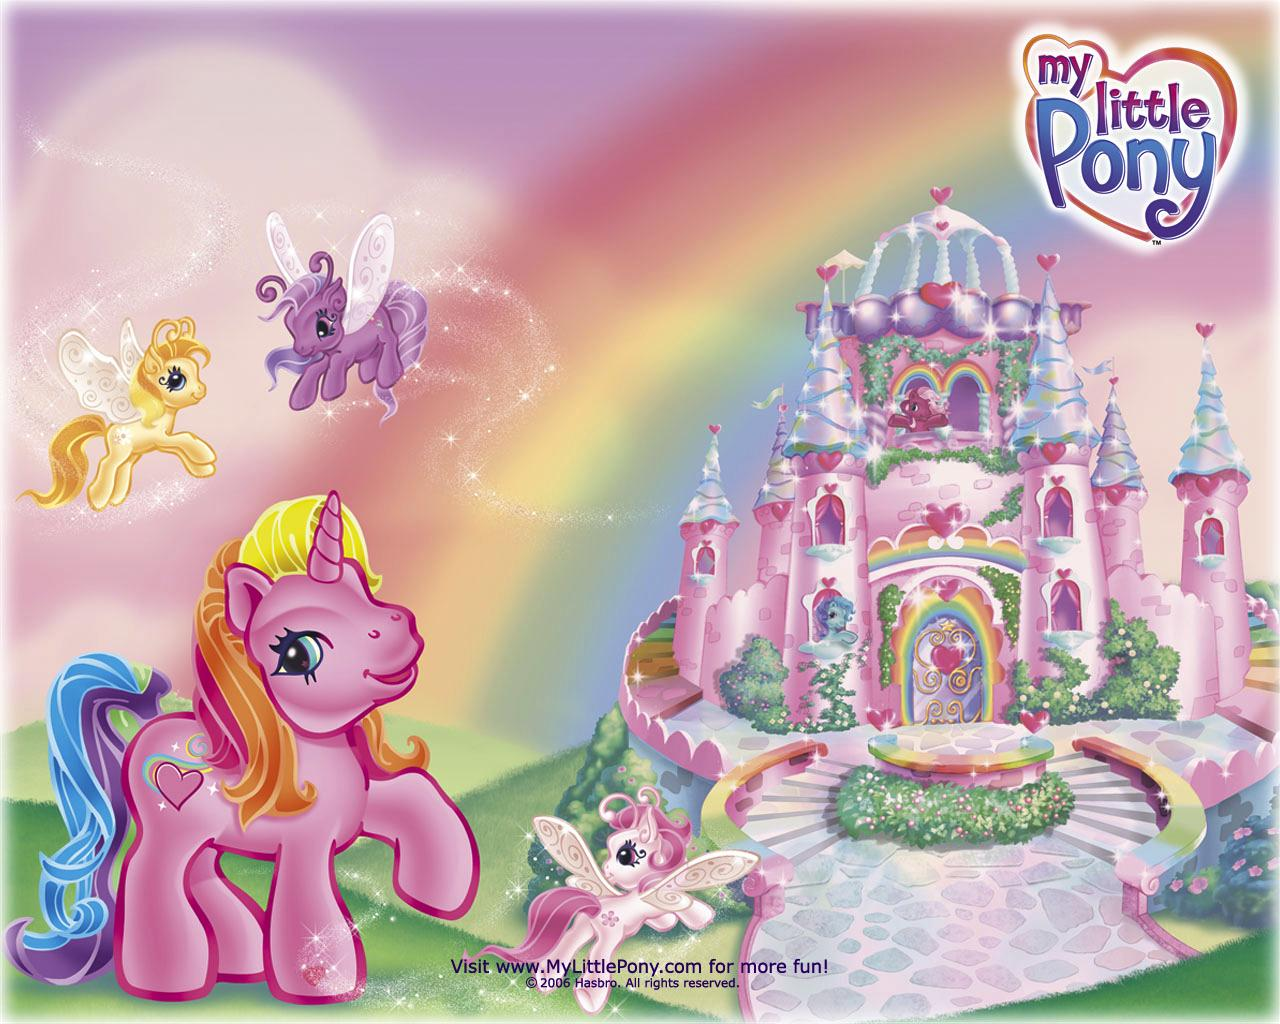 My-Little-Pony-my-little-pony-256751_1280_1024.jpg